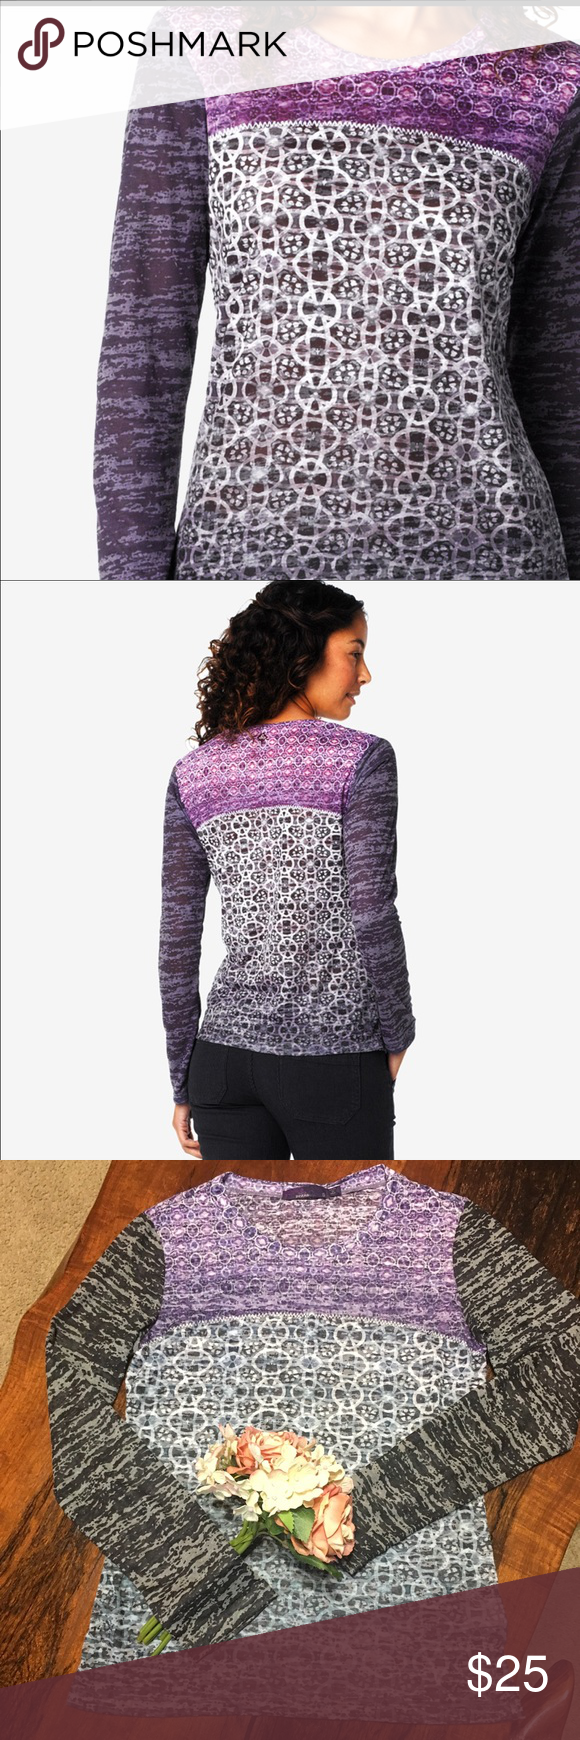 💜PrAna LOTTIE TOP💜 In GOOD CONDITION NO STAINS NO HOLES! Prana Tops Tees - Long Sleeve